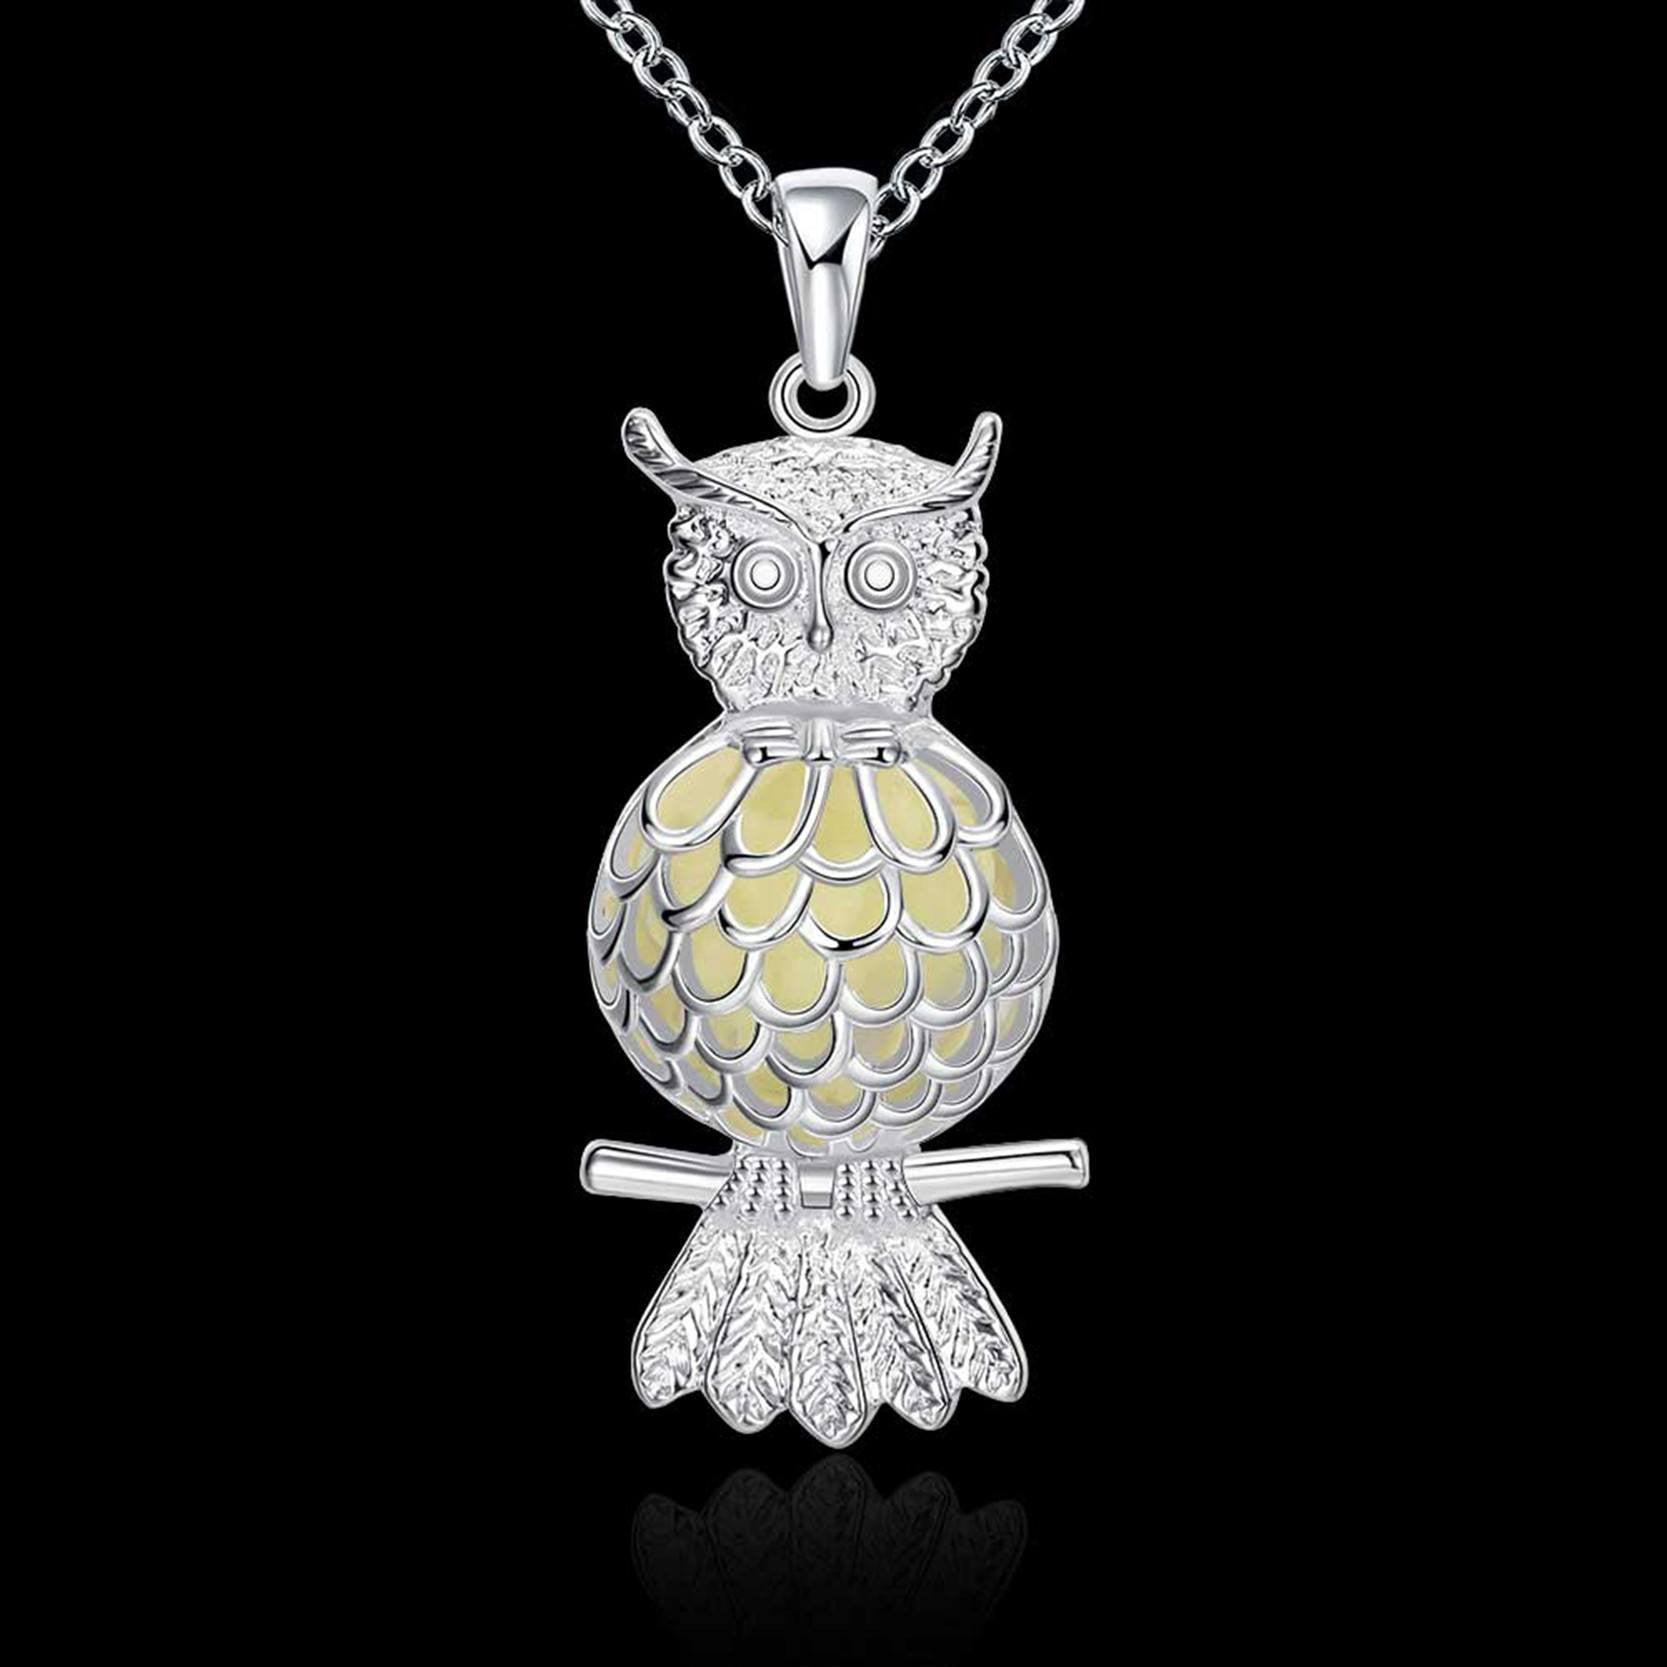 rhodium crystal pendant clear hi rickis owl res necklace